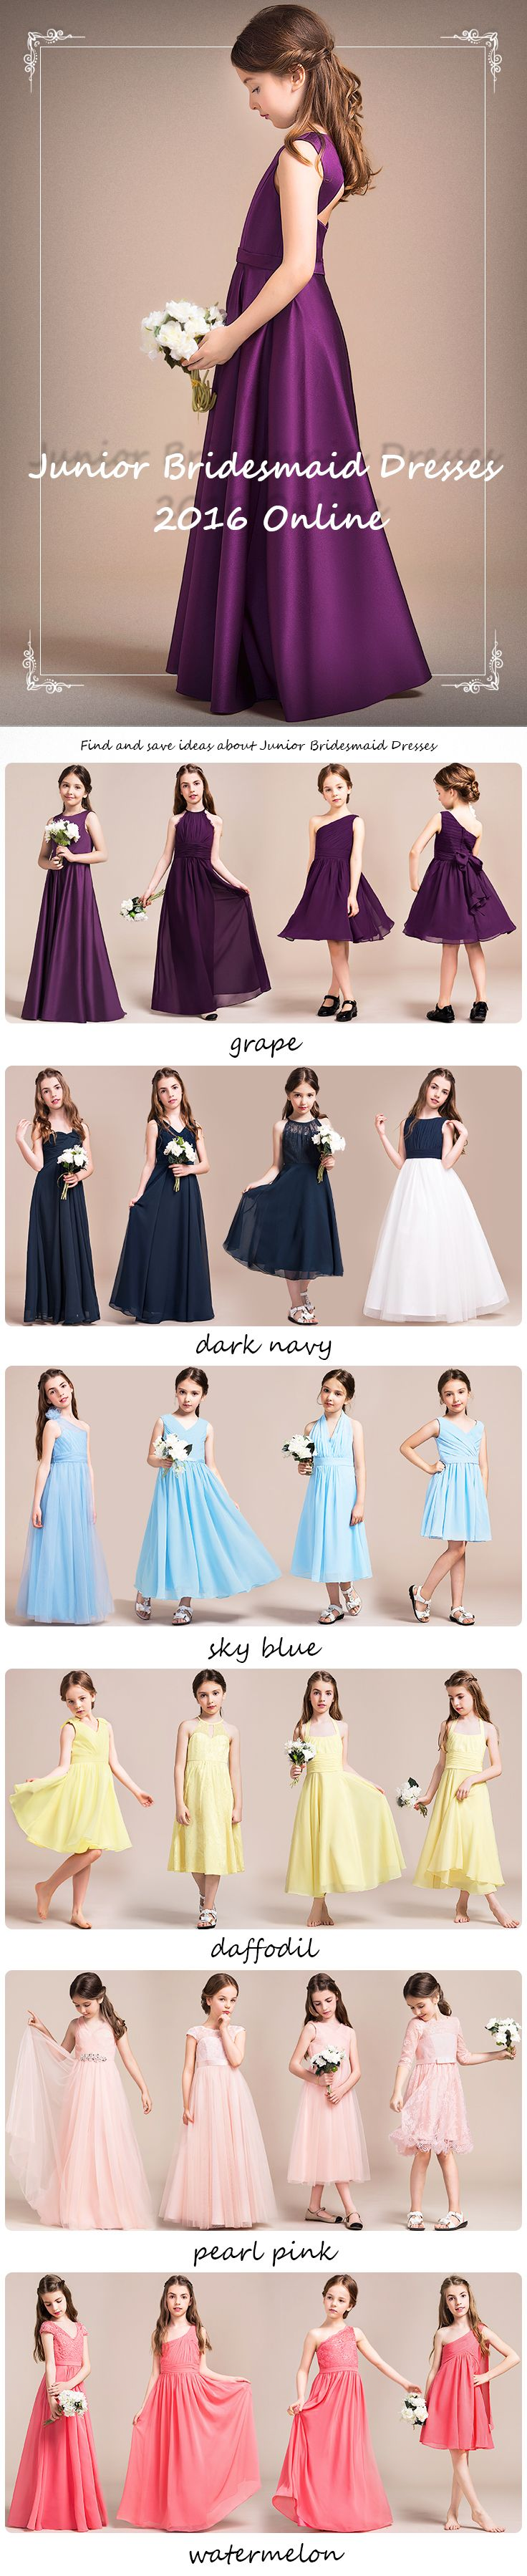 Junior Bridesmaid Dresses 2016 Online! Find and save ideas about Junior Bridesmaid Dresses! #Juniorbridesmaiddresses